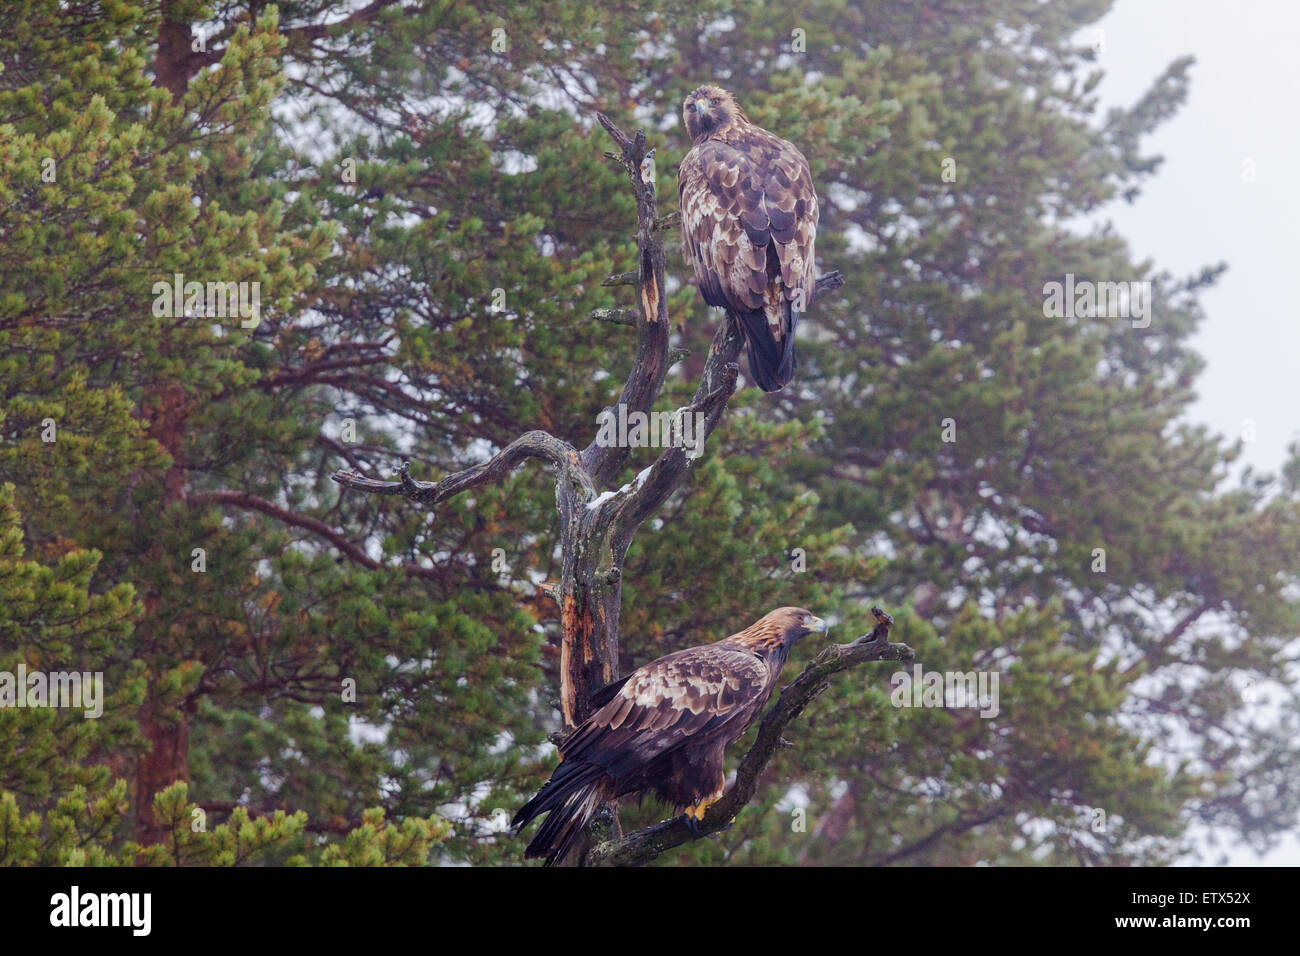 Golden eagles sitting in an old tree with juniper trees in background in sweden, Scandinavia - Stock Image